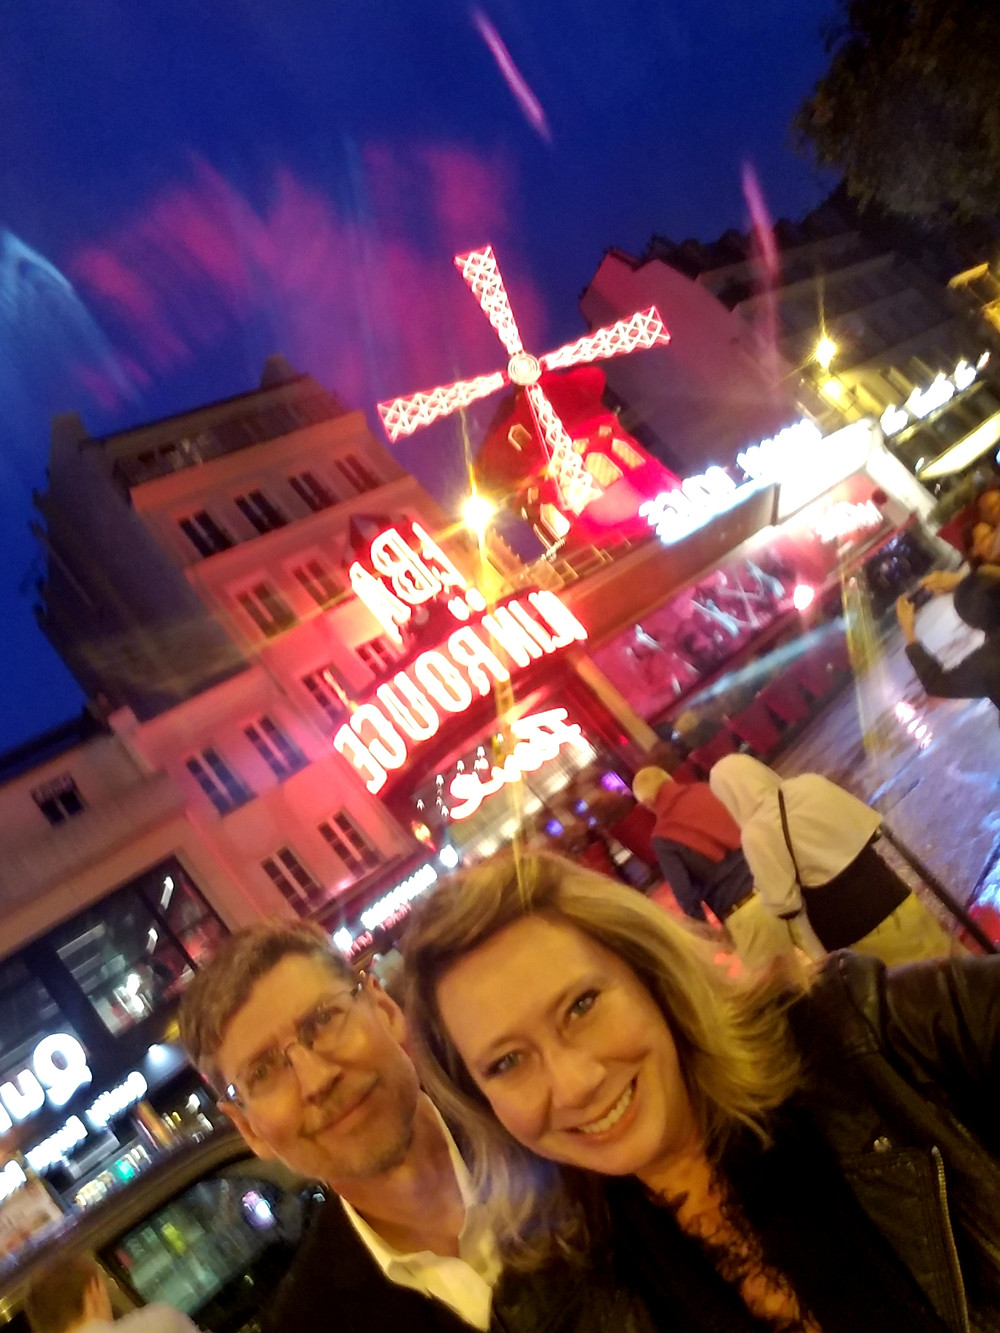 Scott & Kate at the Moulin Rouge